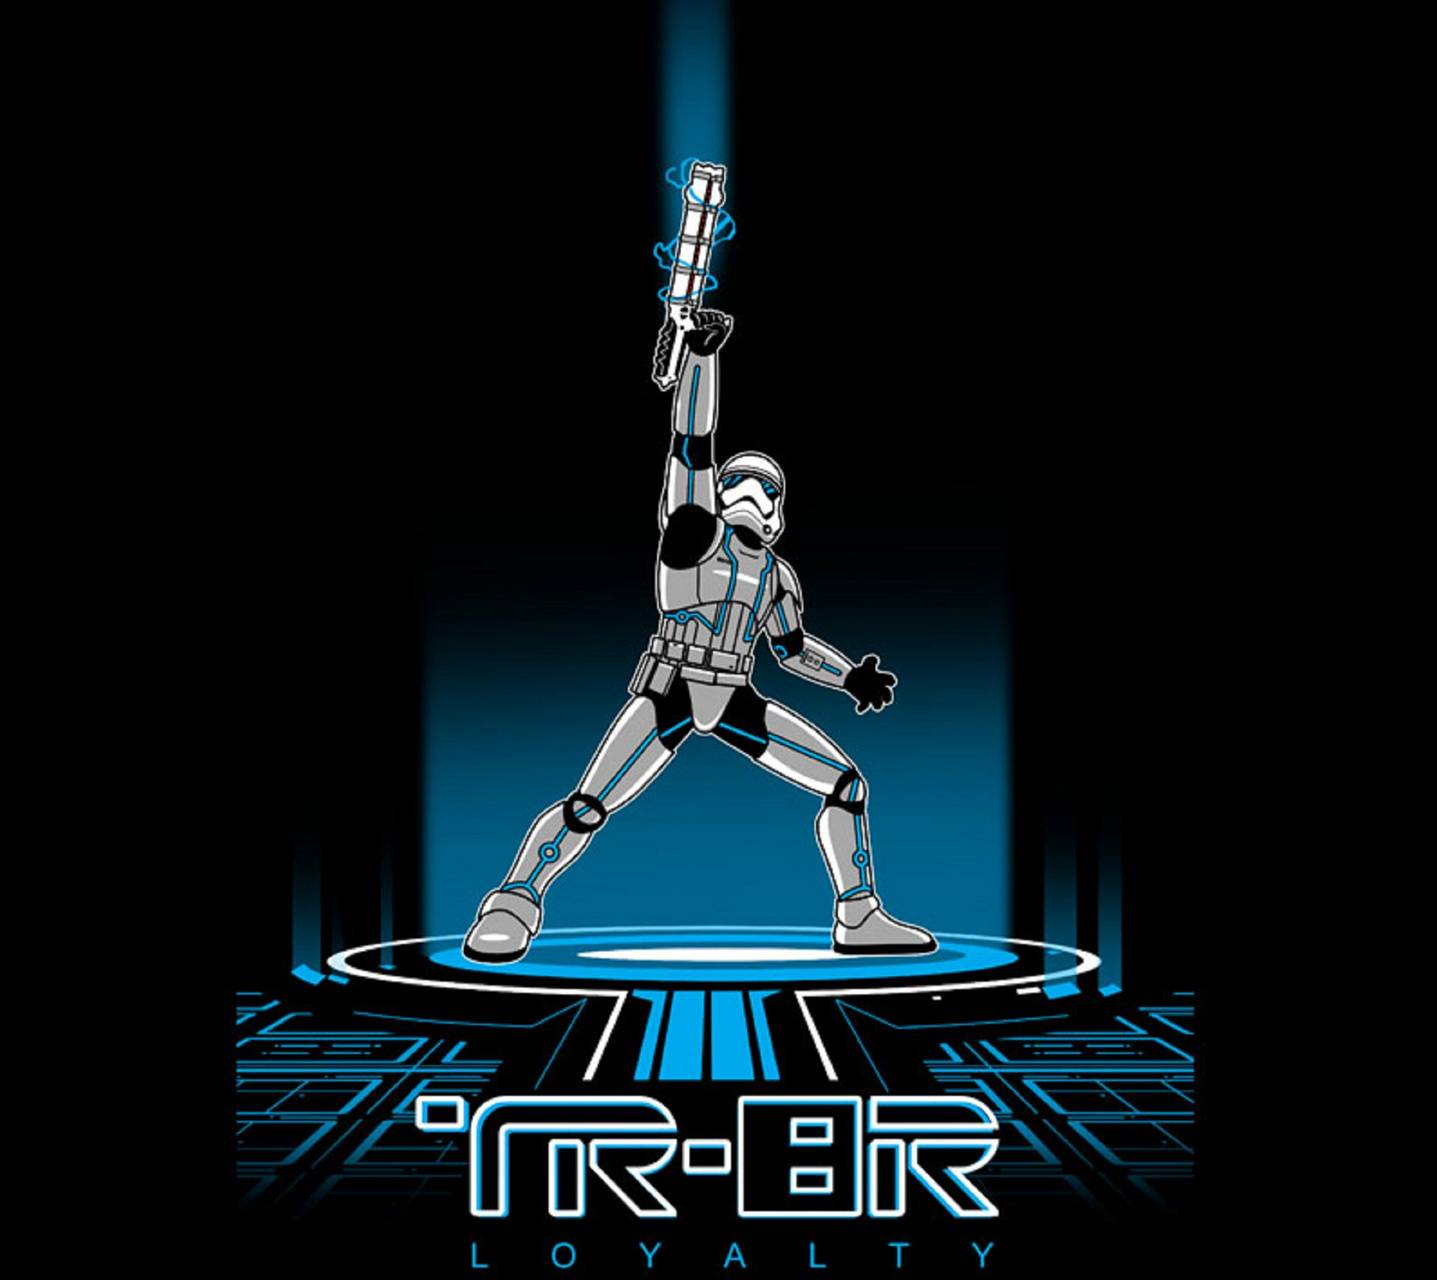 Tr 8r Tron Wallpaper By Darthramious Ed Free On Zedge